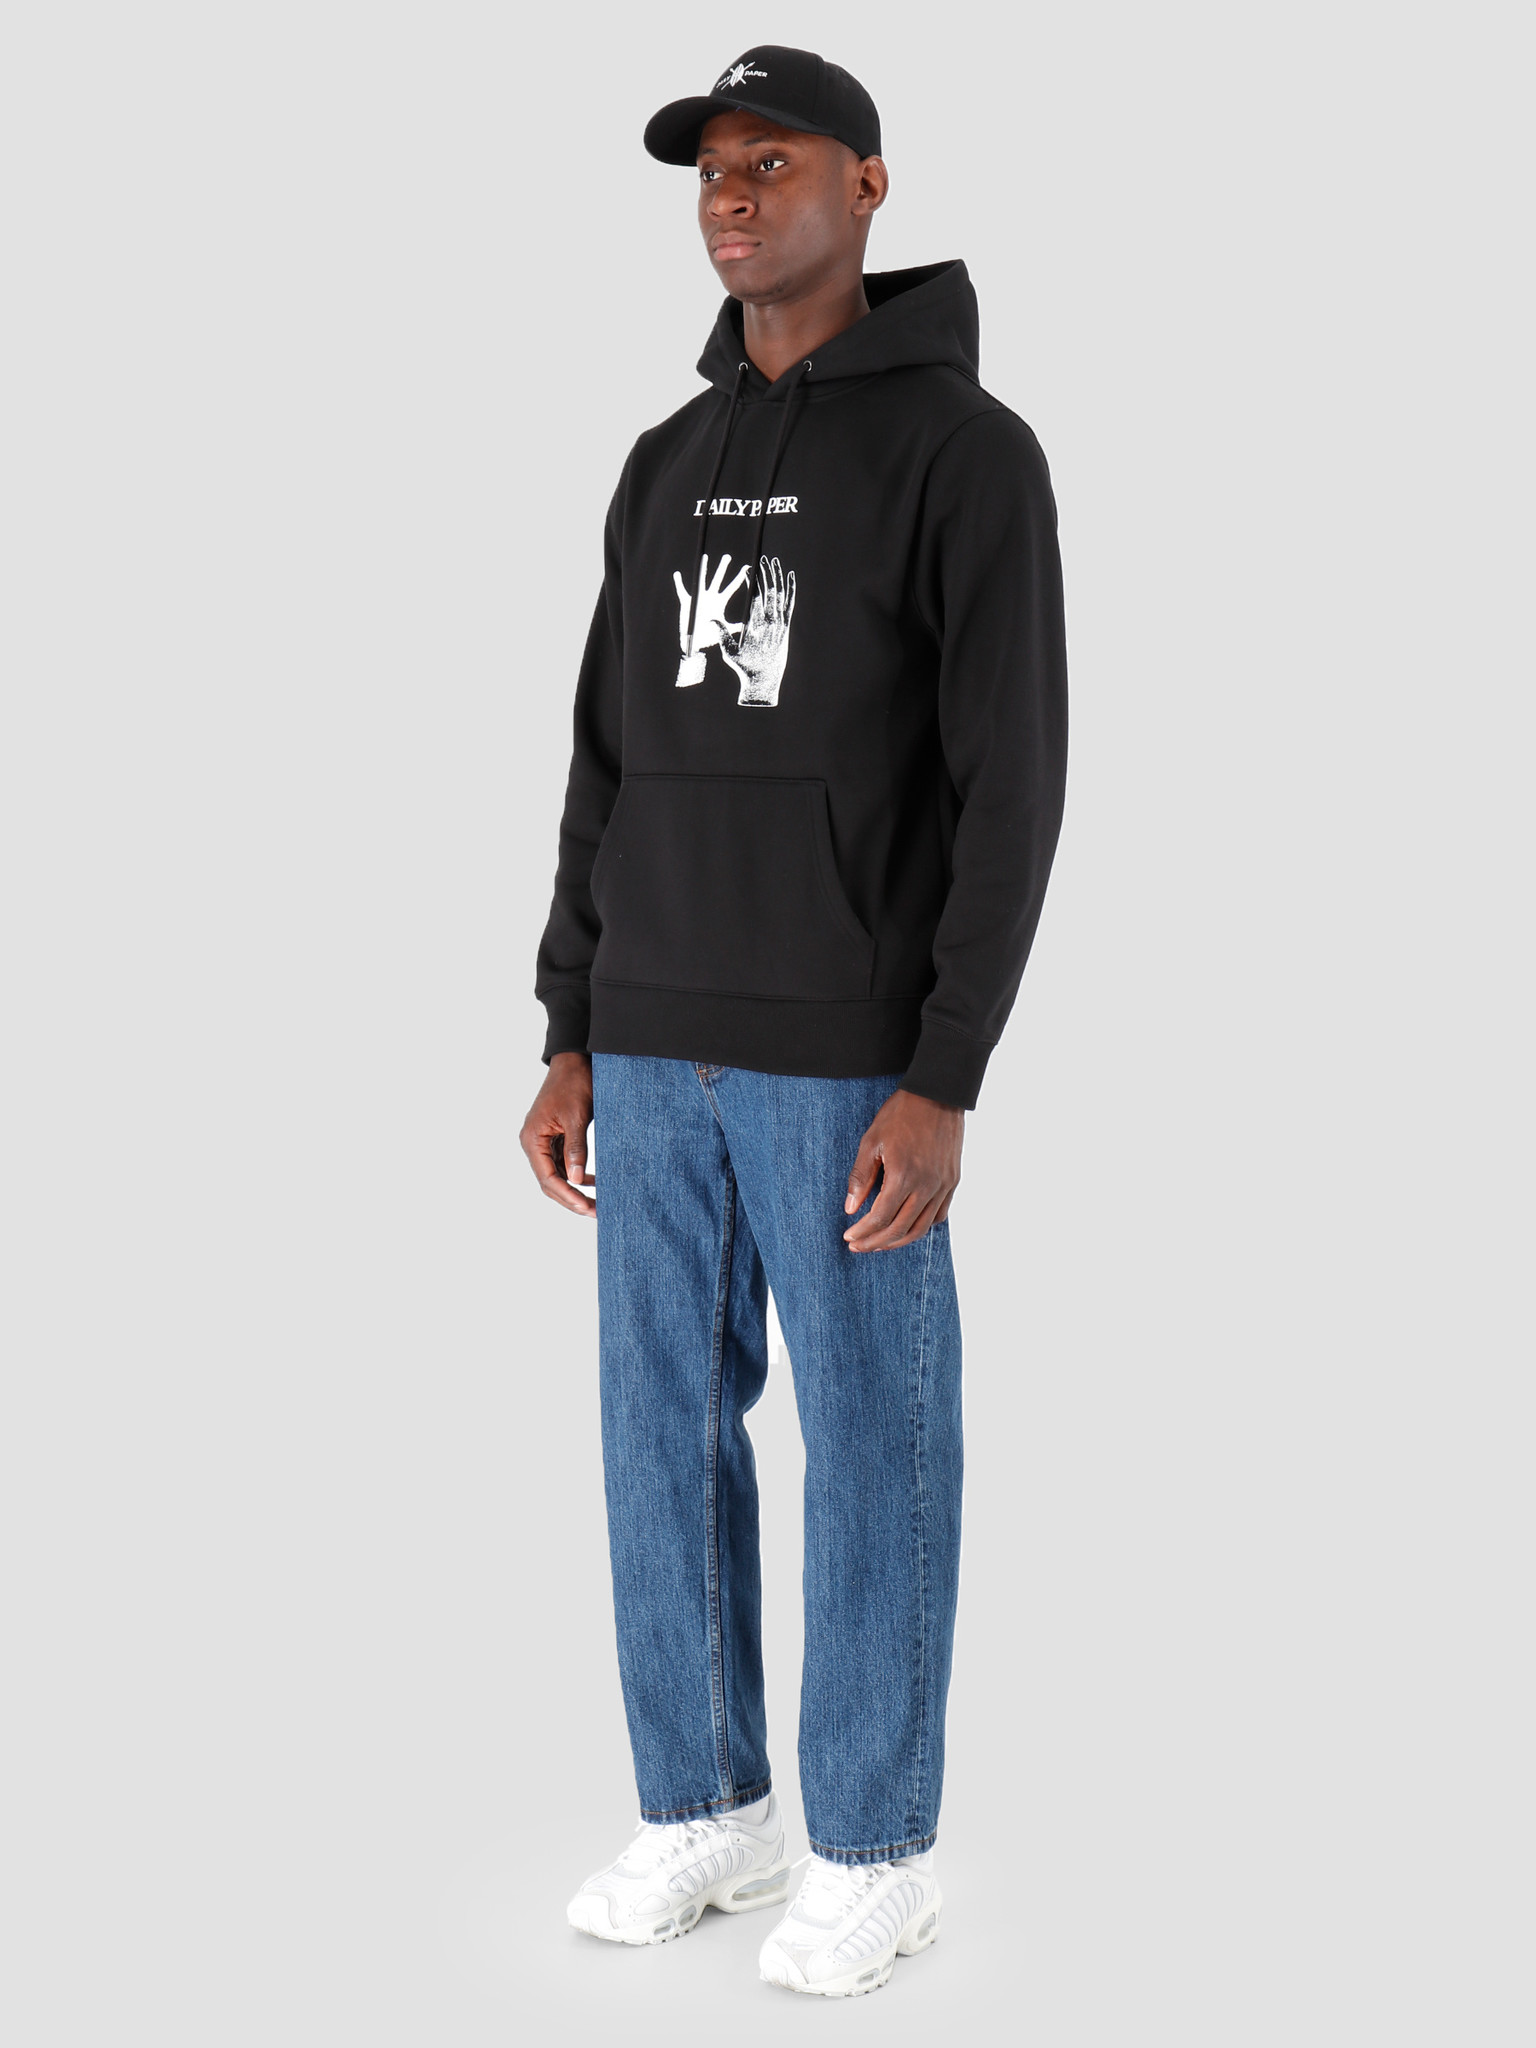 Daily Paper Daily Paper Gahand Hoodie Black 19F1HD15-01